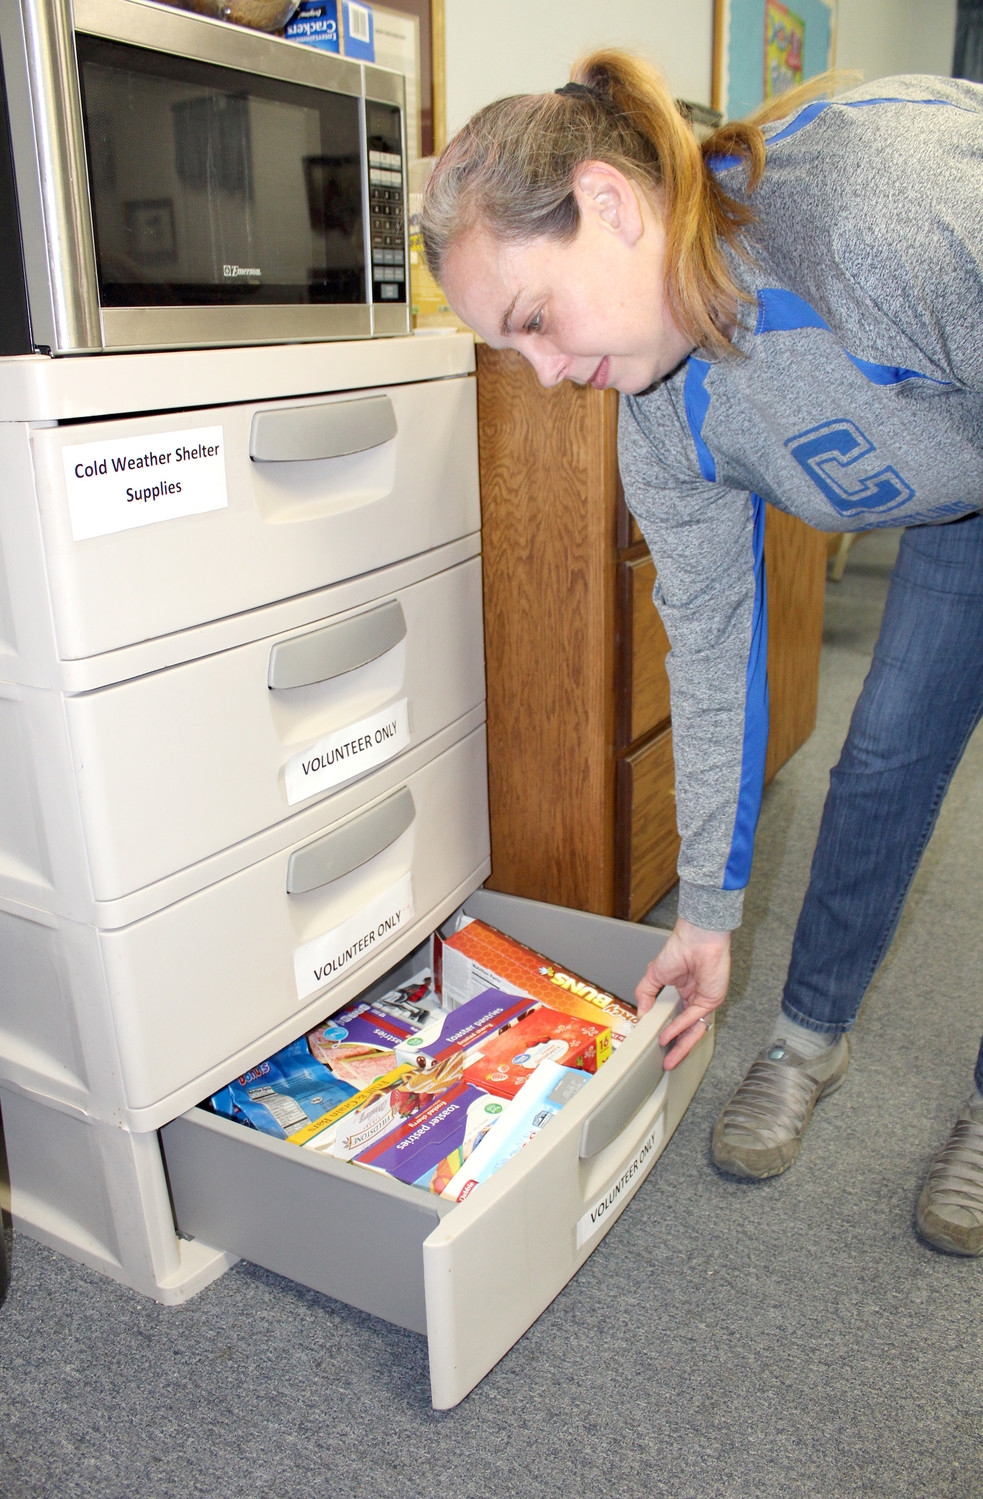 STOCKING supplies for Wesley Memorial United Methodist Church's Cold Weather Shelter is part of coordinator Amy Mott's responsibilities. The shelter, which opens when temperatures are 30 degrees or lower, is currently slated to operate now through Thursday.